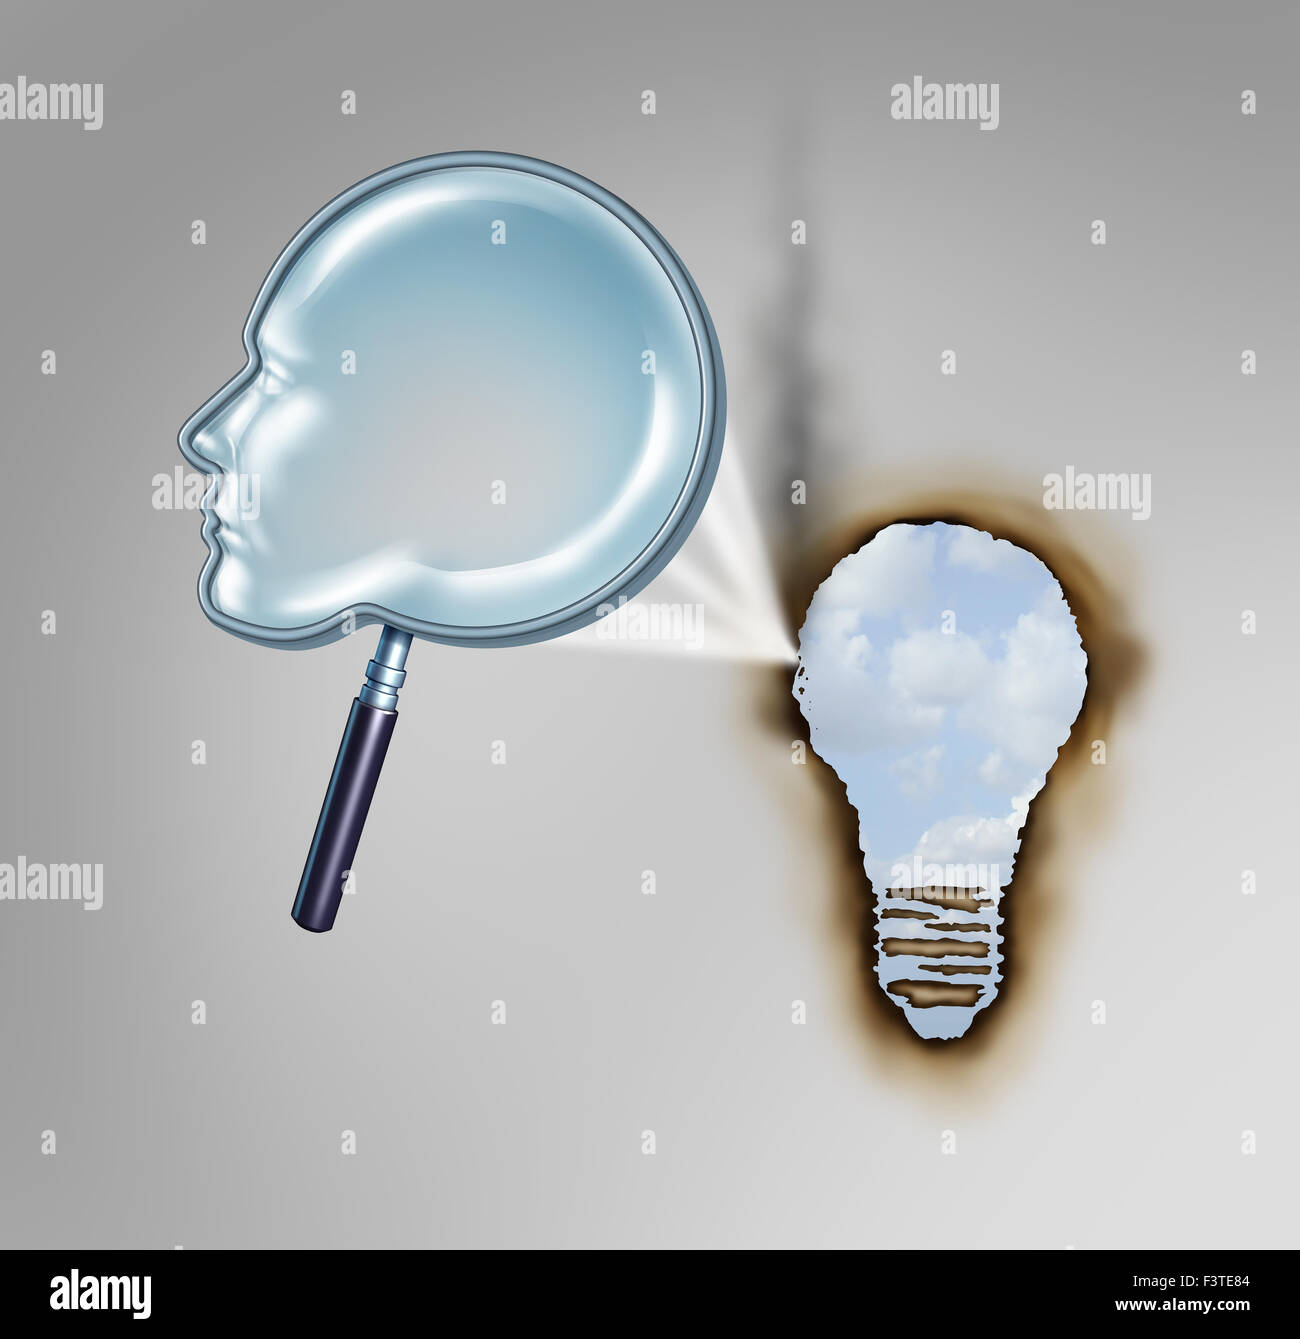 Human creativity concept as a magnifying glass shaped as a head profile creating a hot beam of light burning a hole - Stock Image